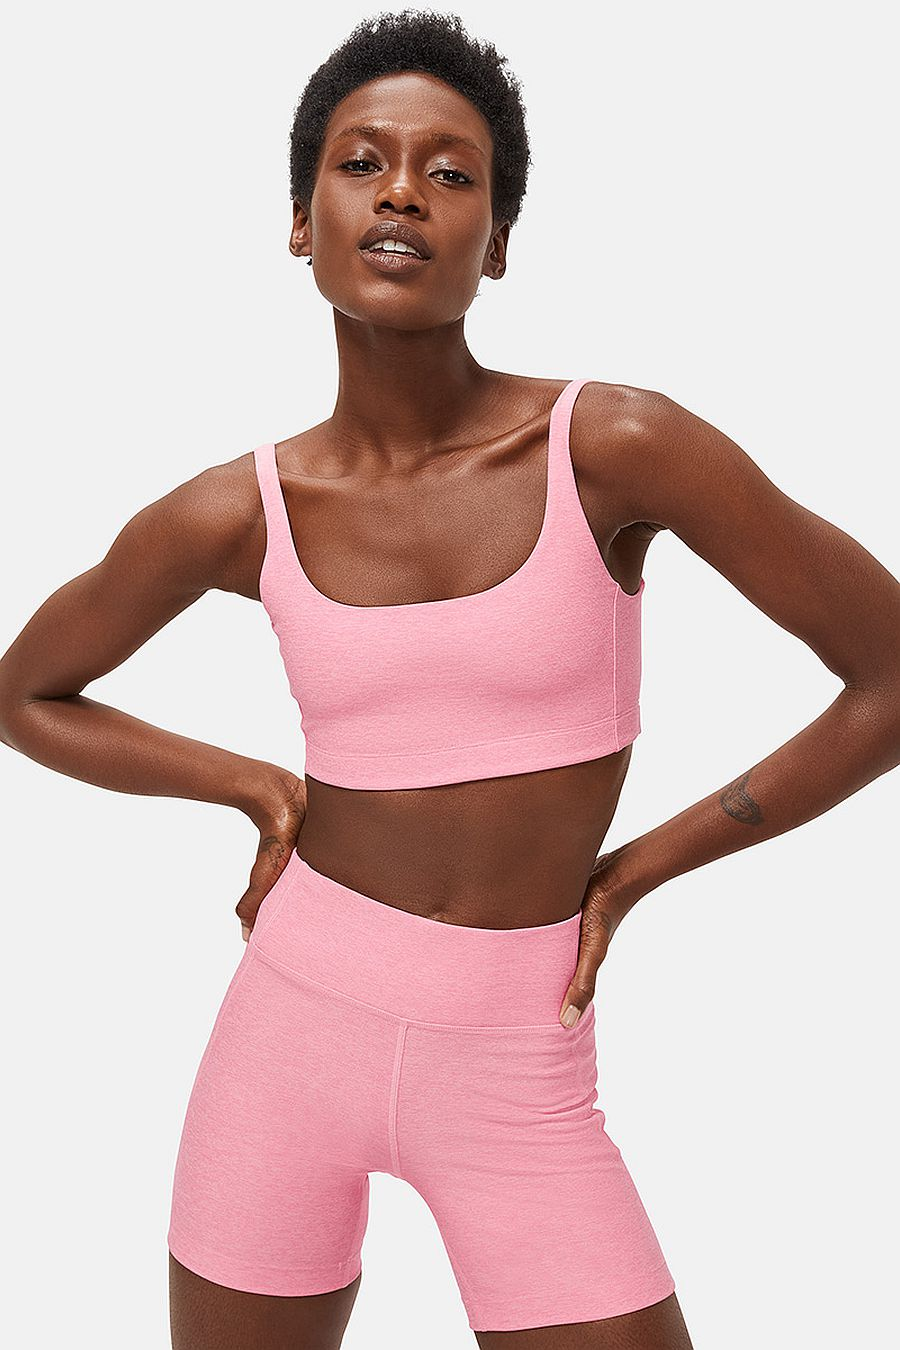 Outdoor Voices Double time bra - Pink punch